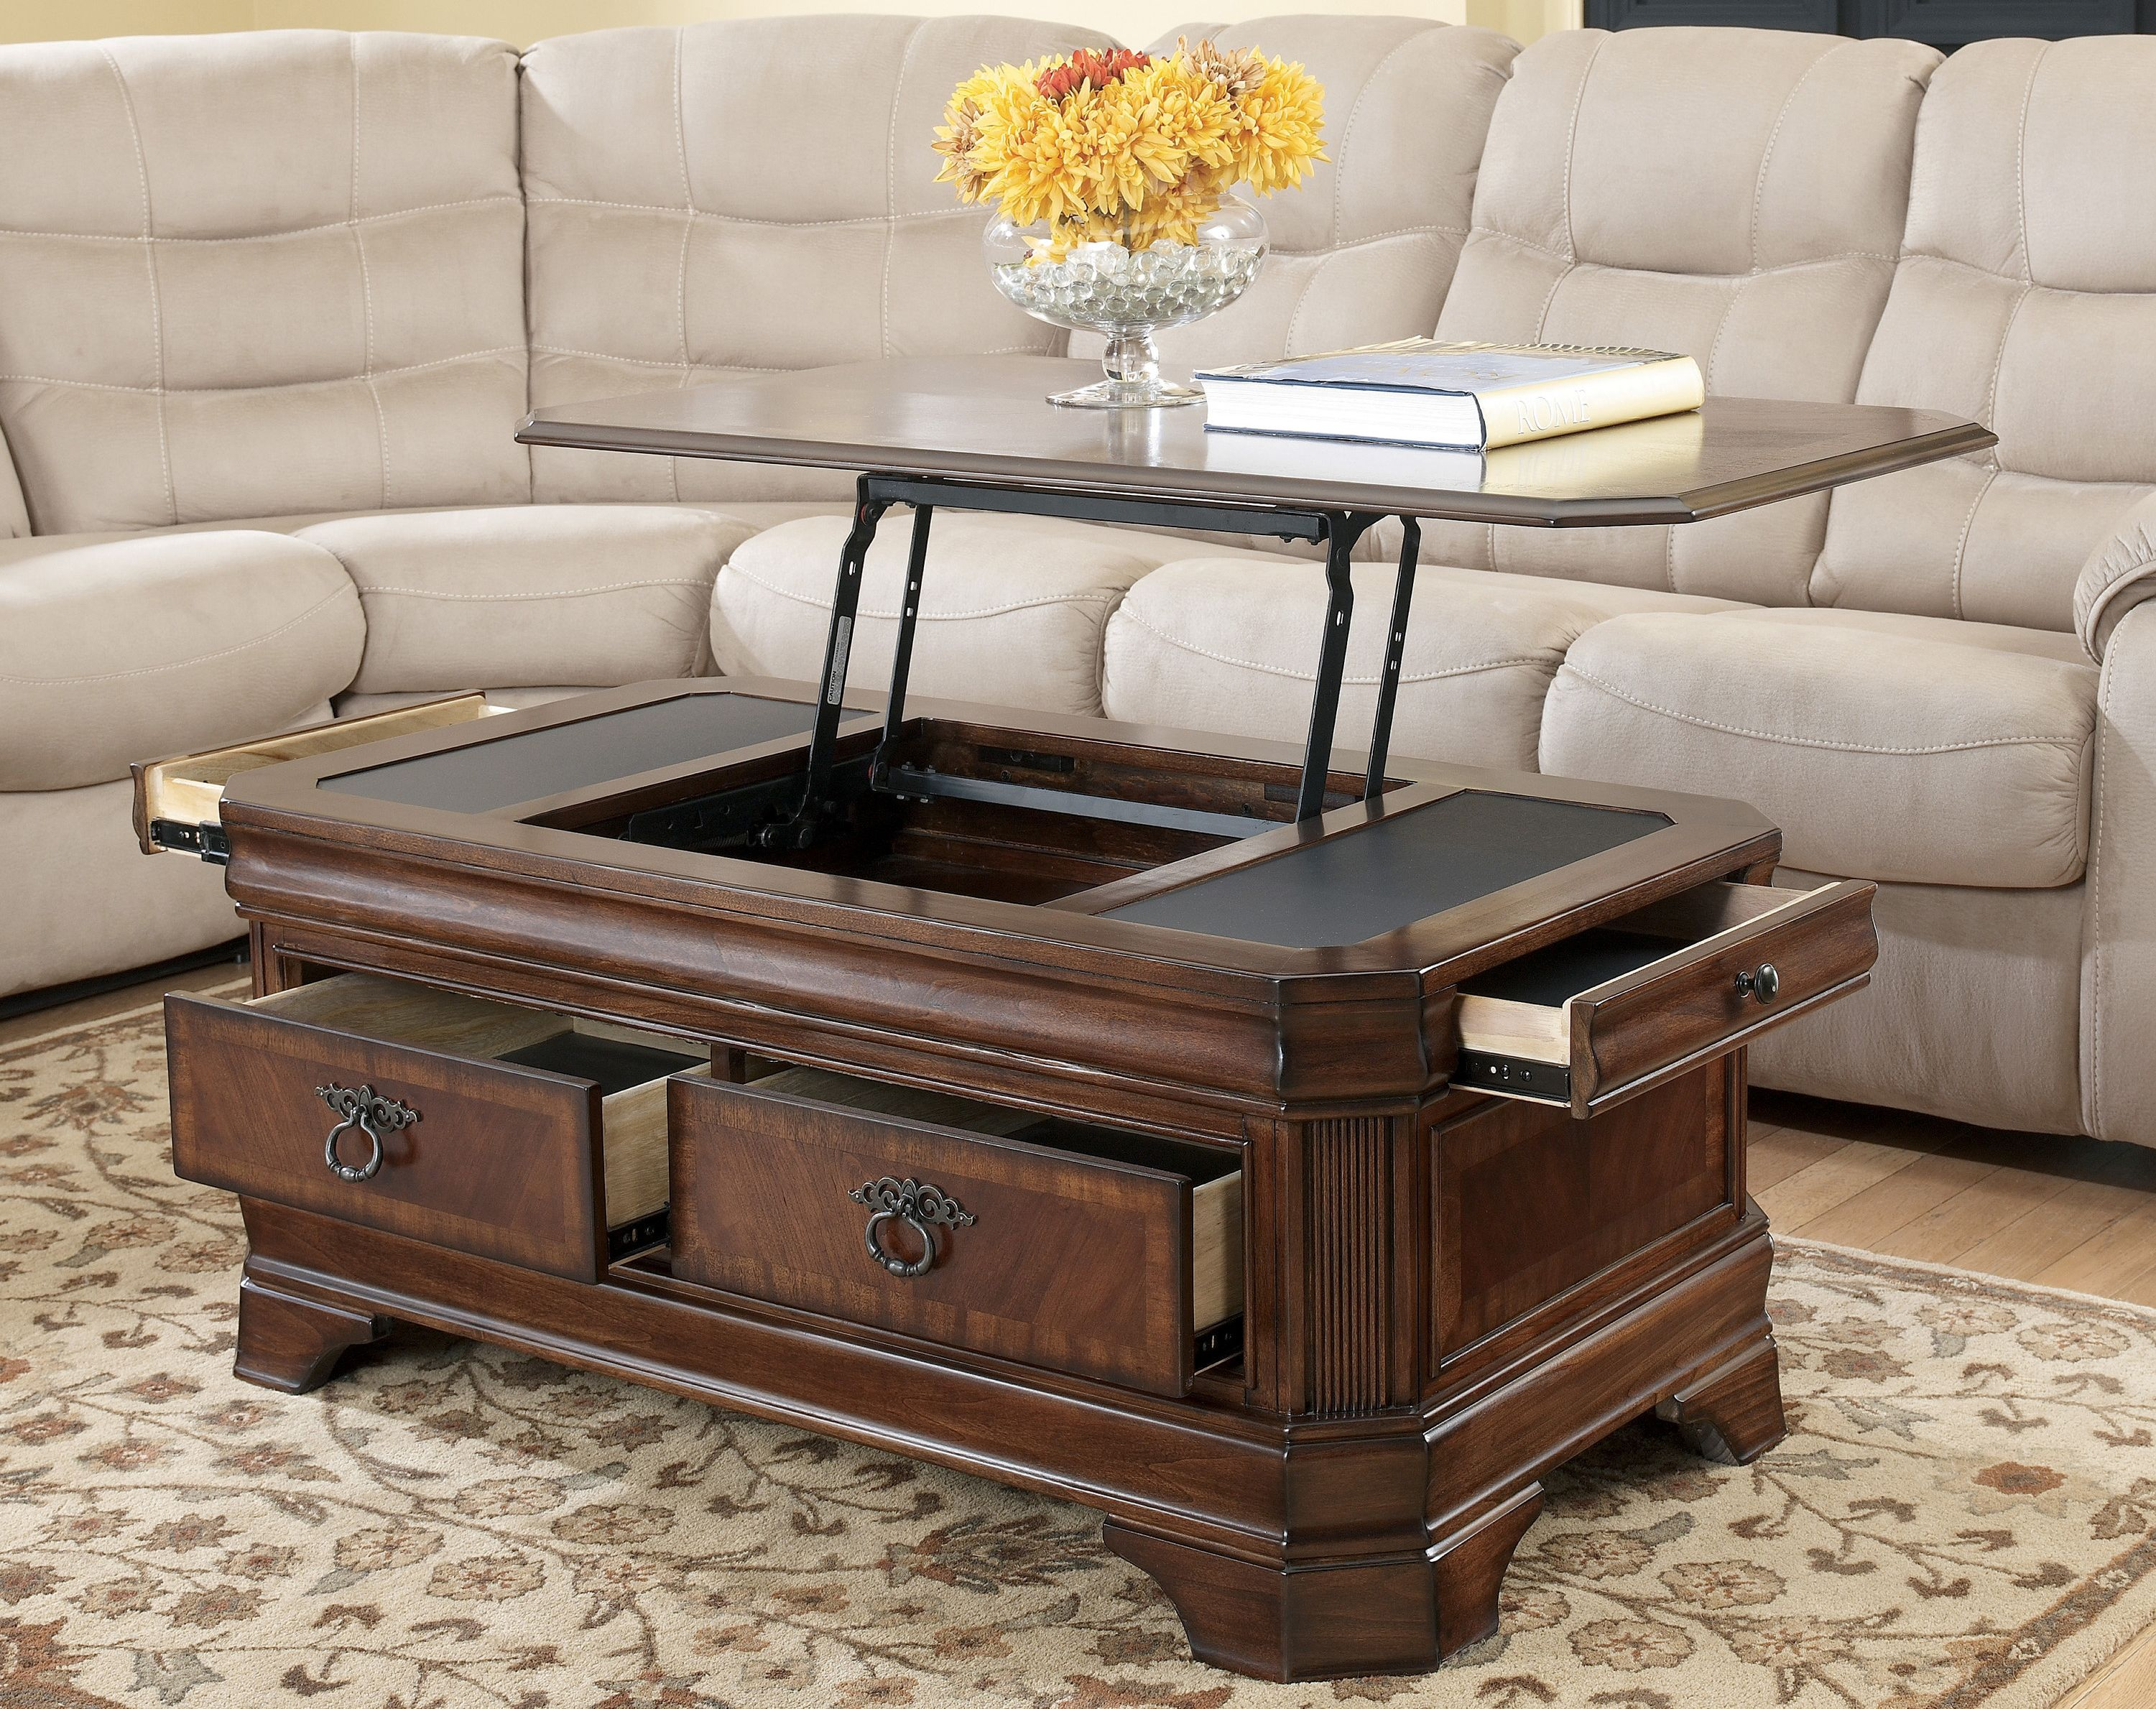 Lift top coffee tables are usually stationary with the rare